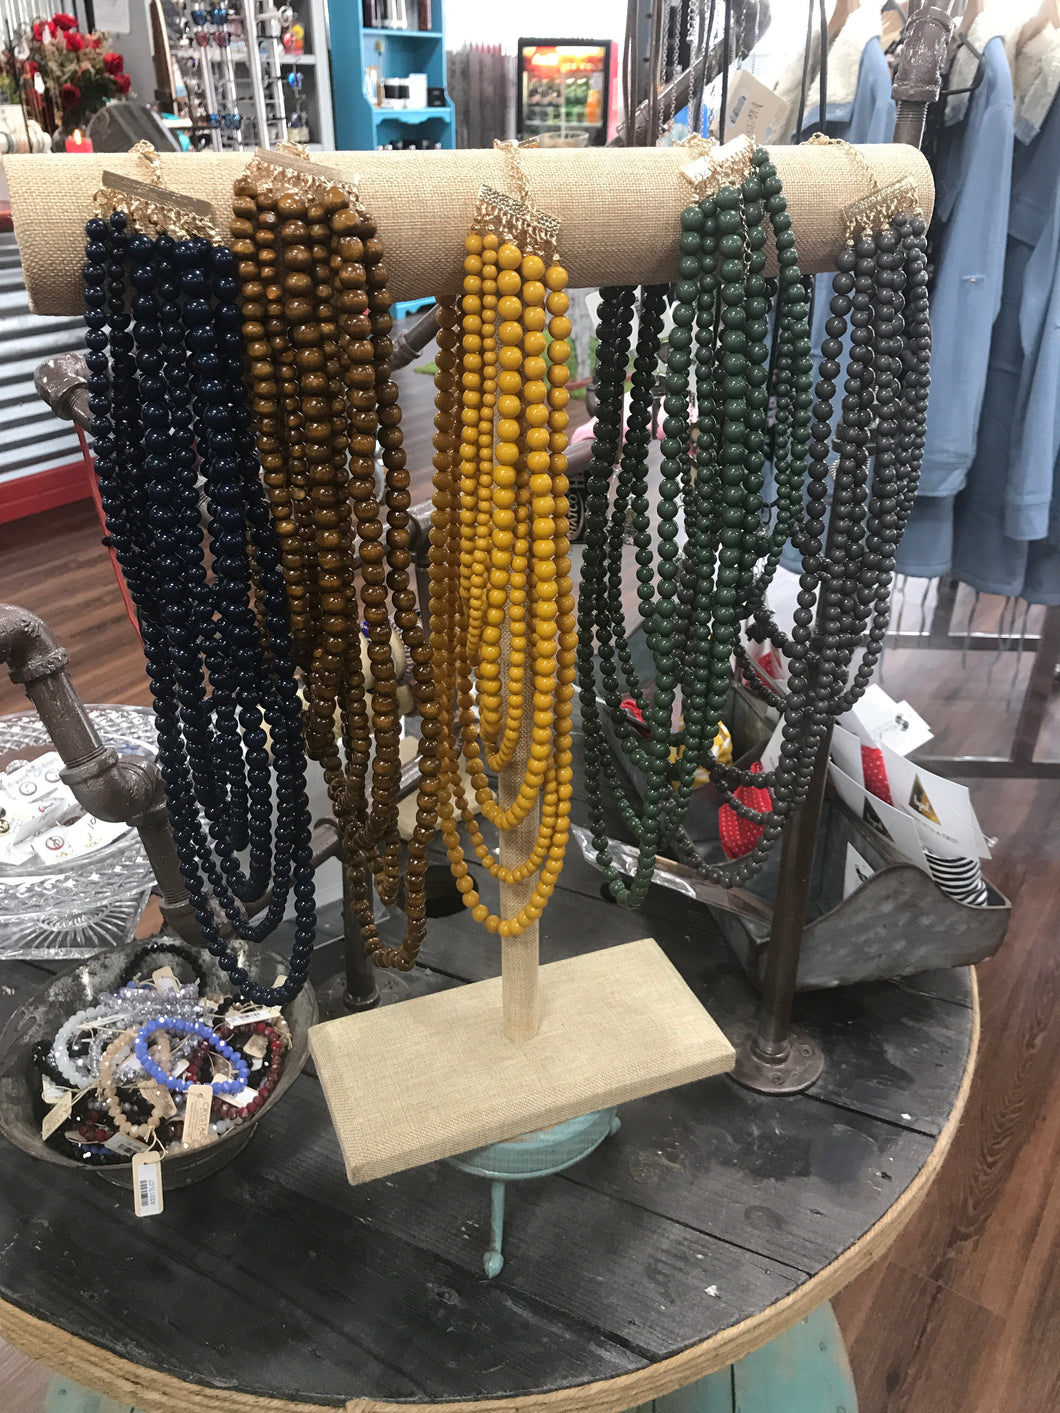 Tiered beaded necklaces